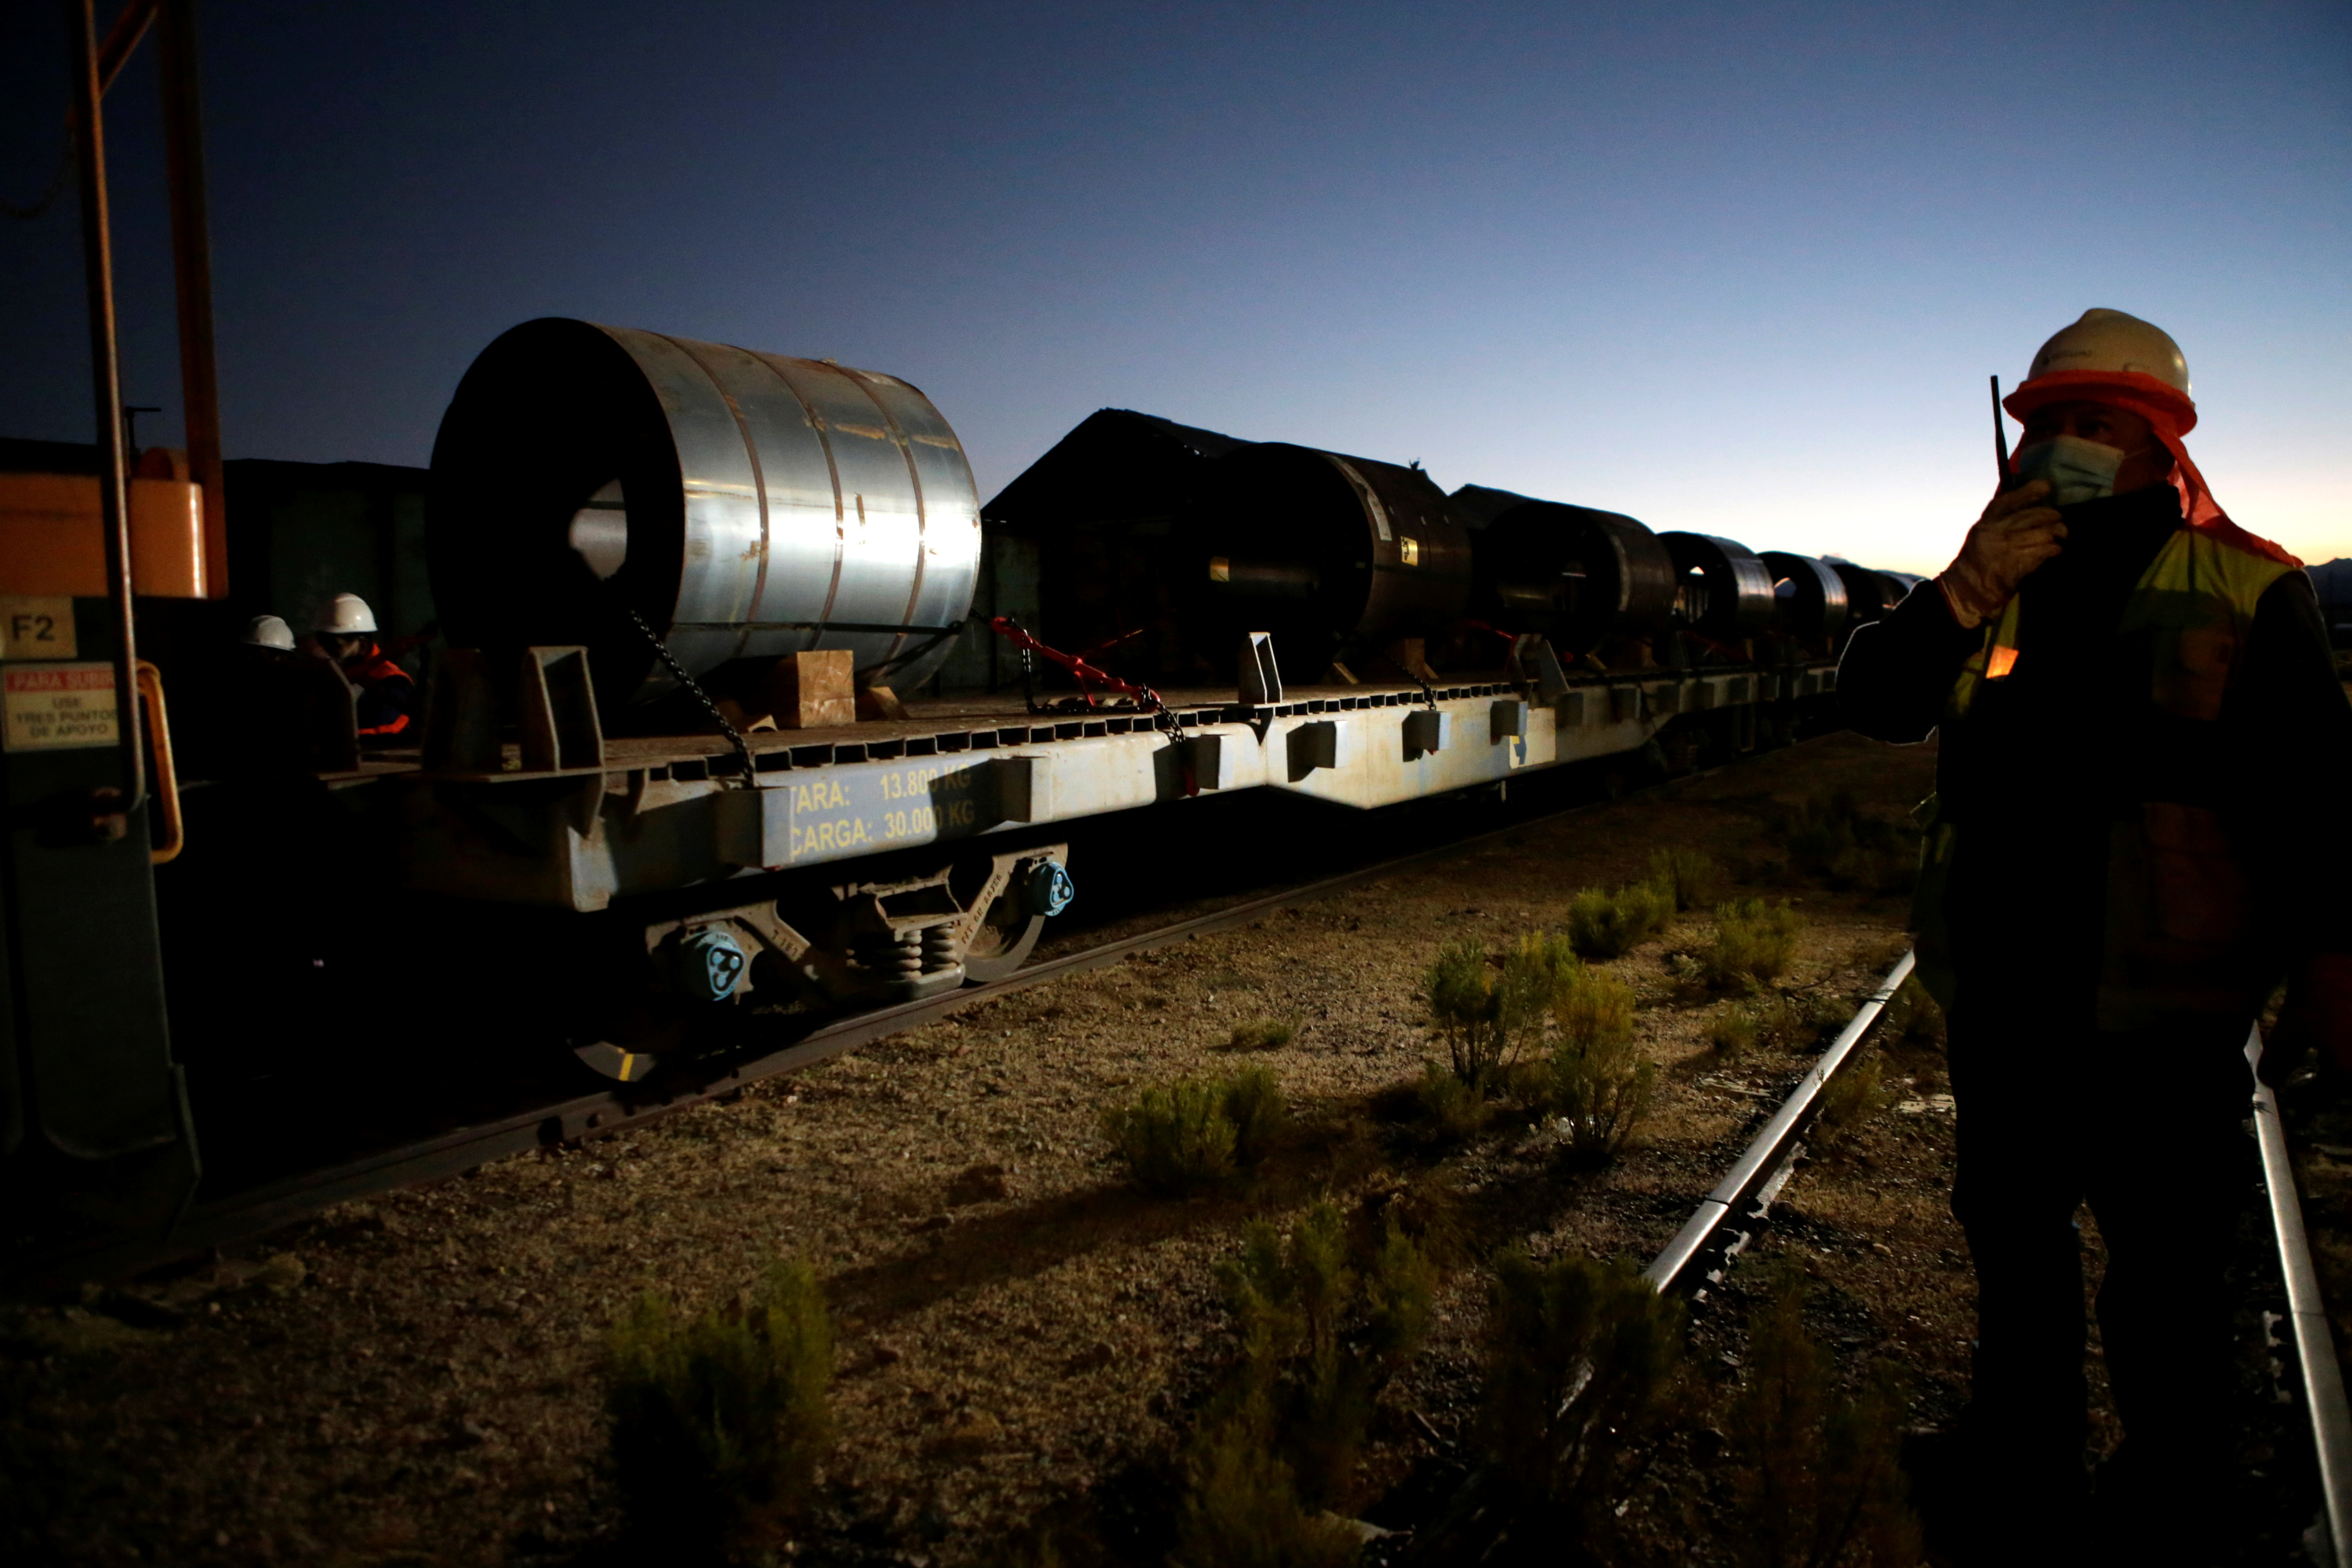 A railway worker stands next to a cargo of iron coil brought by Chile's Arica-La Paz Railway and to be taken to Bolivia, at the border between Chile and Bolivia, in Visviri, Chile May 7, 2021. Picture taken May 7, 2021. REUTERS/Manuel Claure